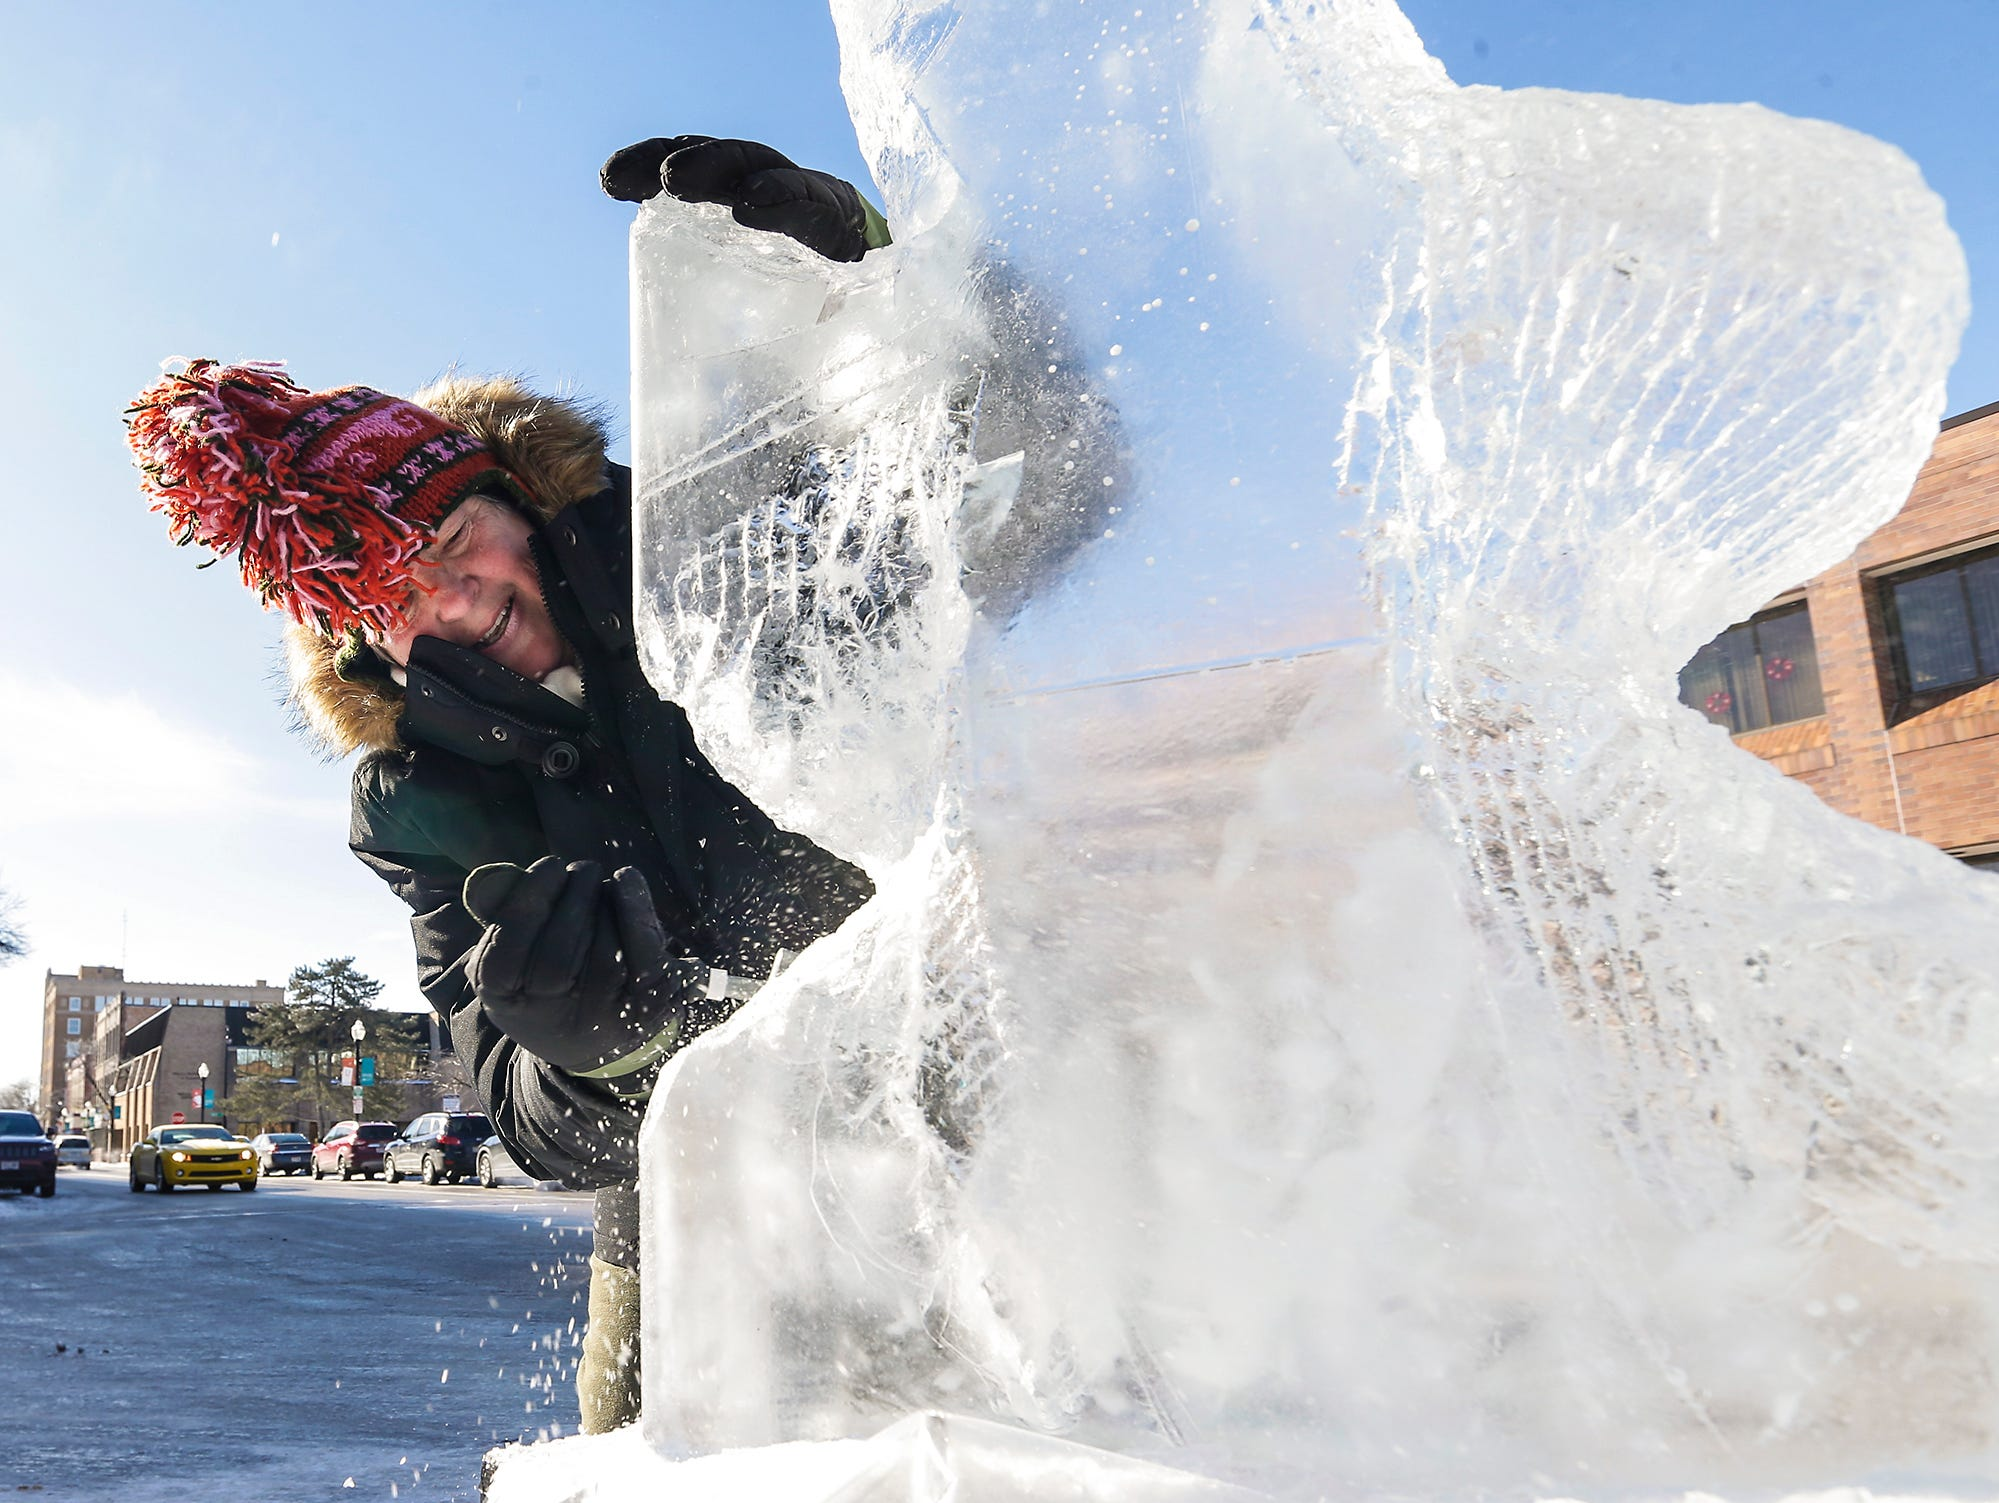 Jean Koerner of Montello works on an ice sculpture of what will be an eagle Saturday, February 9, 2019 on Main Street in downton Fond du Lac during Sturgeon Spectacular. Sturgeon Spectacular is a weeklong celebration of the lake sturgeon spearing season and includes events on and off the ice in the Fond du Lac area. Doug Raflik/USA TODAY NETWORK-Wisconsin